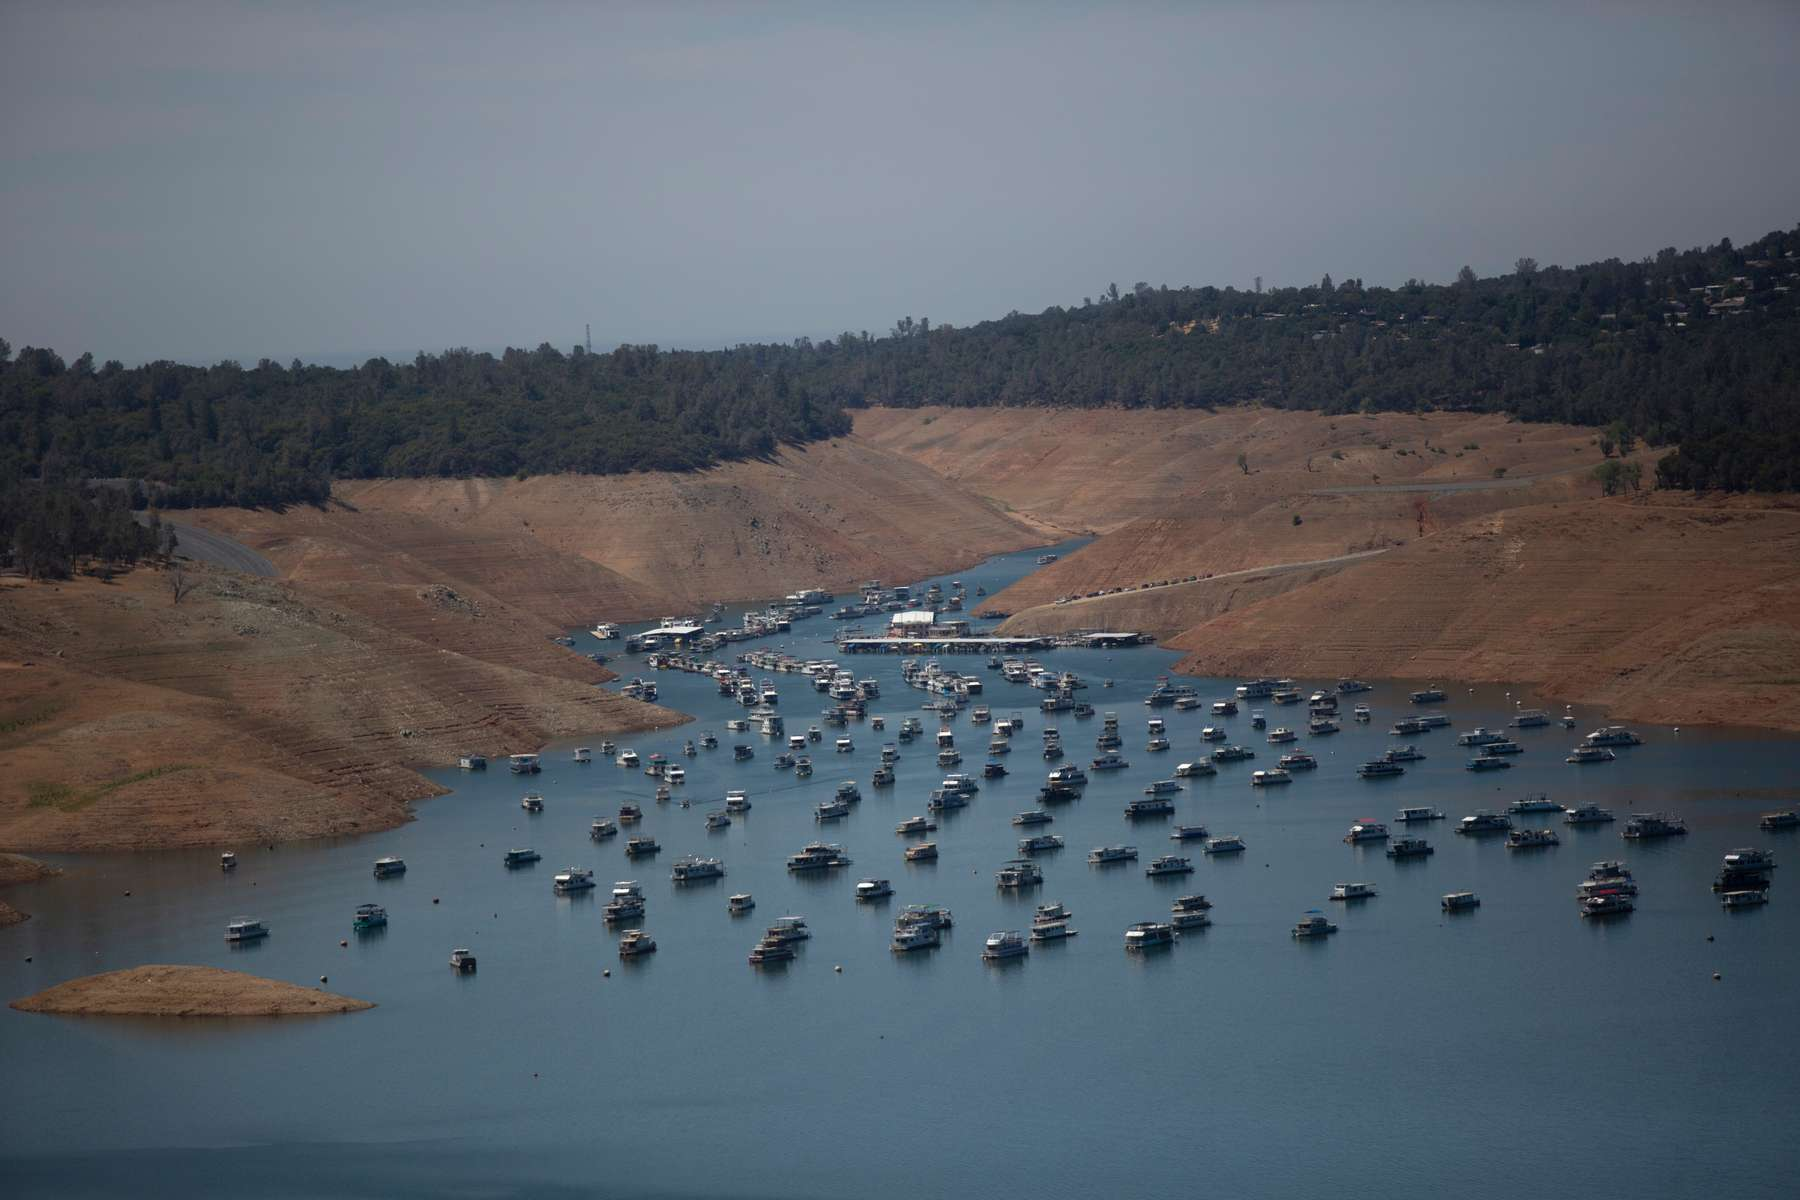 Houseboats are anchored in low water levels at Lake Oroville, which is the second largest reservoir in California and according to daily reports of the state's Department of Water Resources is near 35% capacity, near Oroville, California, U.S., June 16, 2021. Picture taken June 16, 2021.